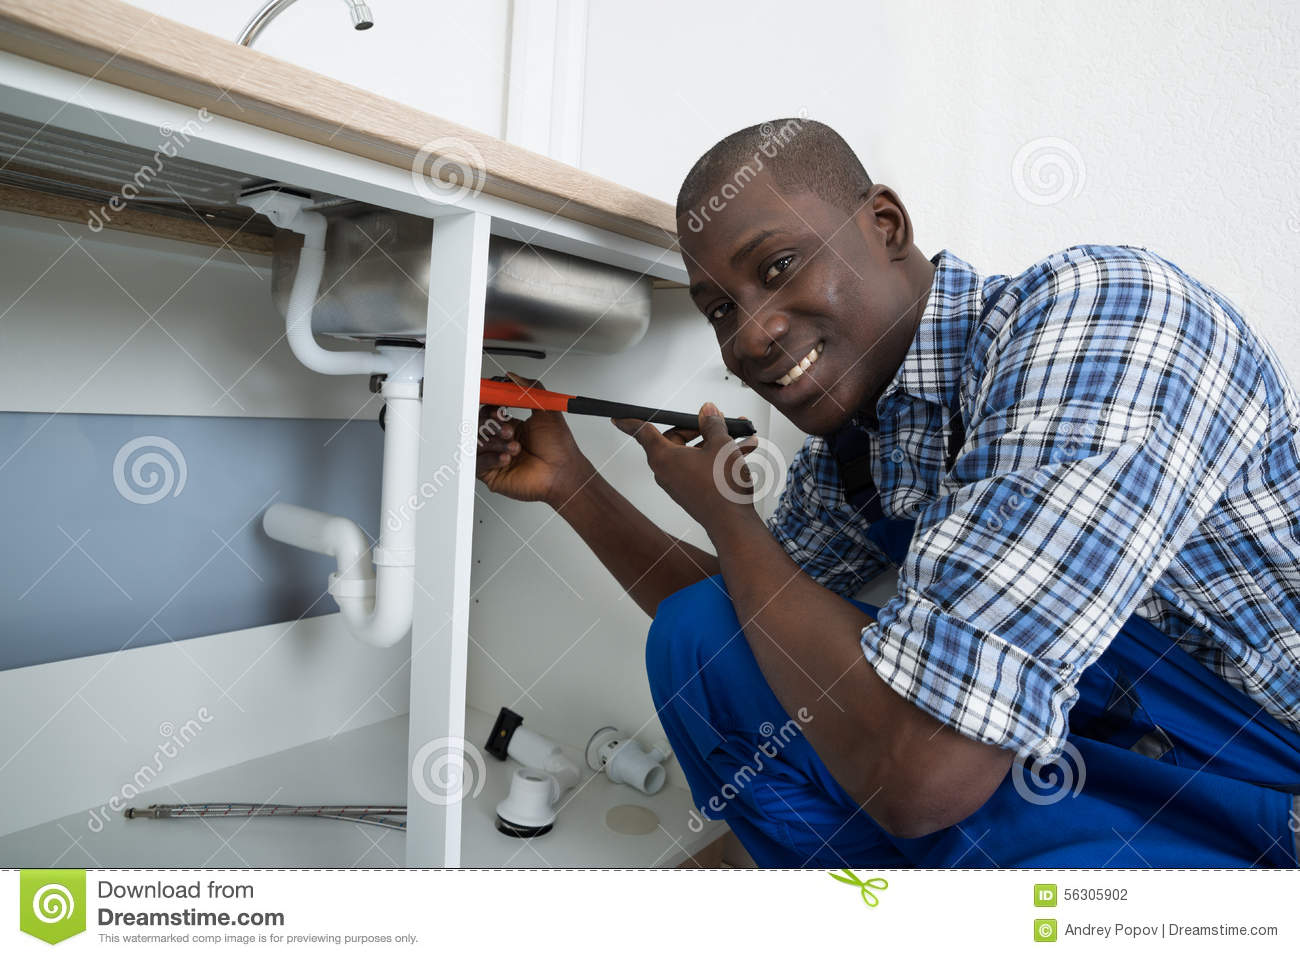 male-plumber-fixing-pipe-sink-close-up-happy-african-kitchen-56305902.jpg